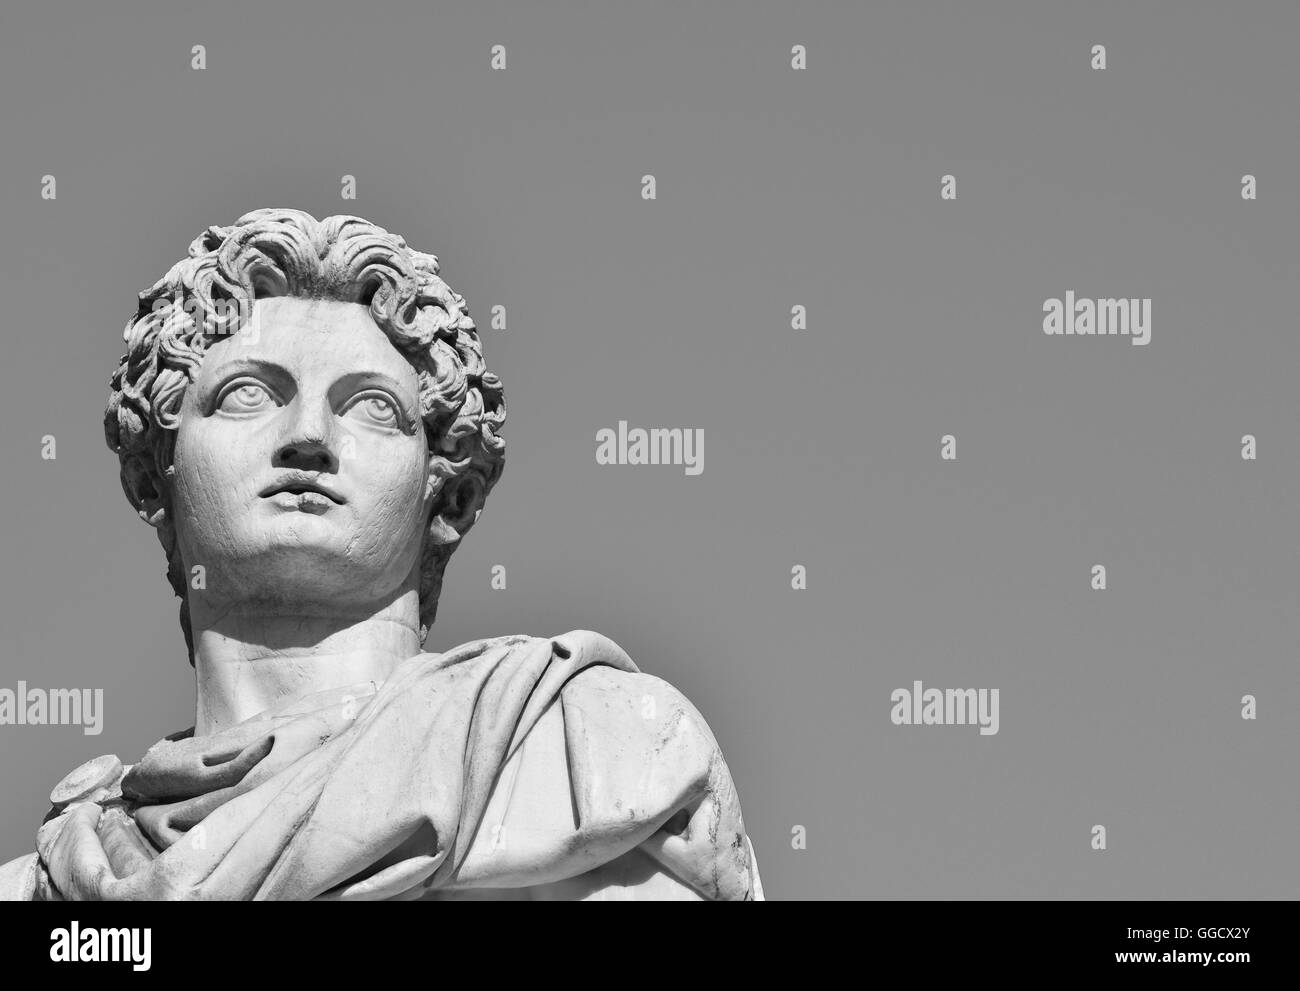 Ancient marble statue of Dioskouri at the top of monumental balustrade in Capitoline Hill, Rome (B/W) - Stock Image